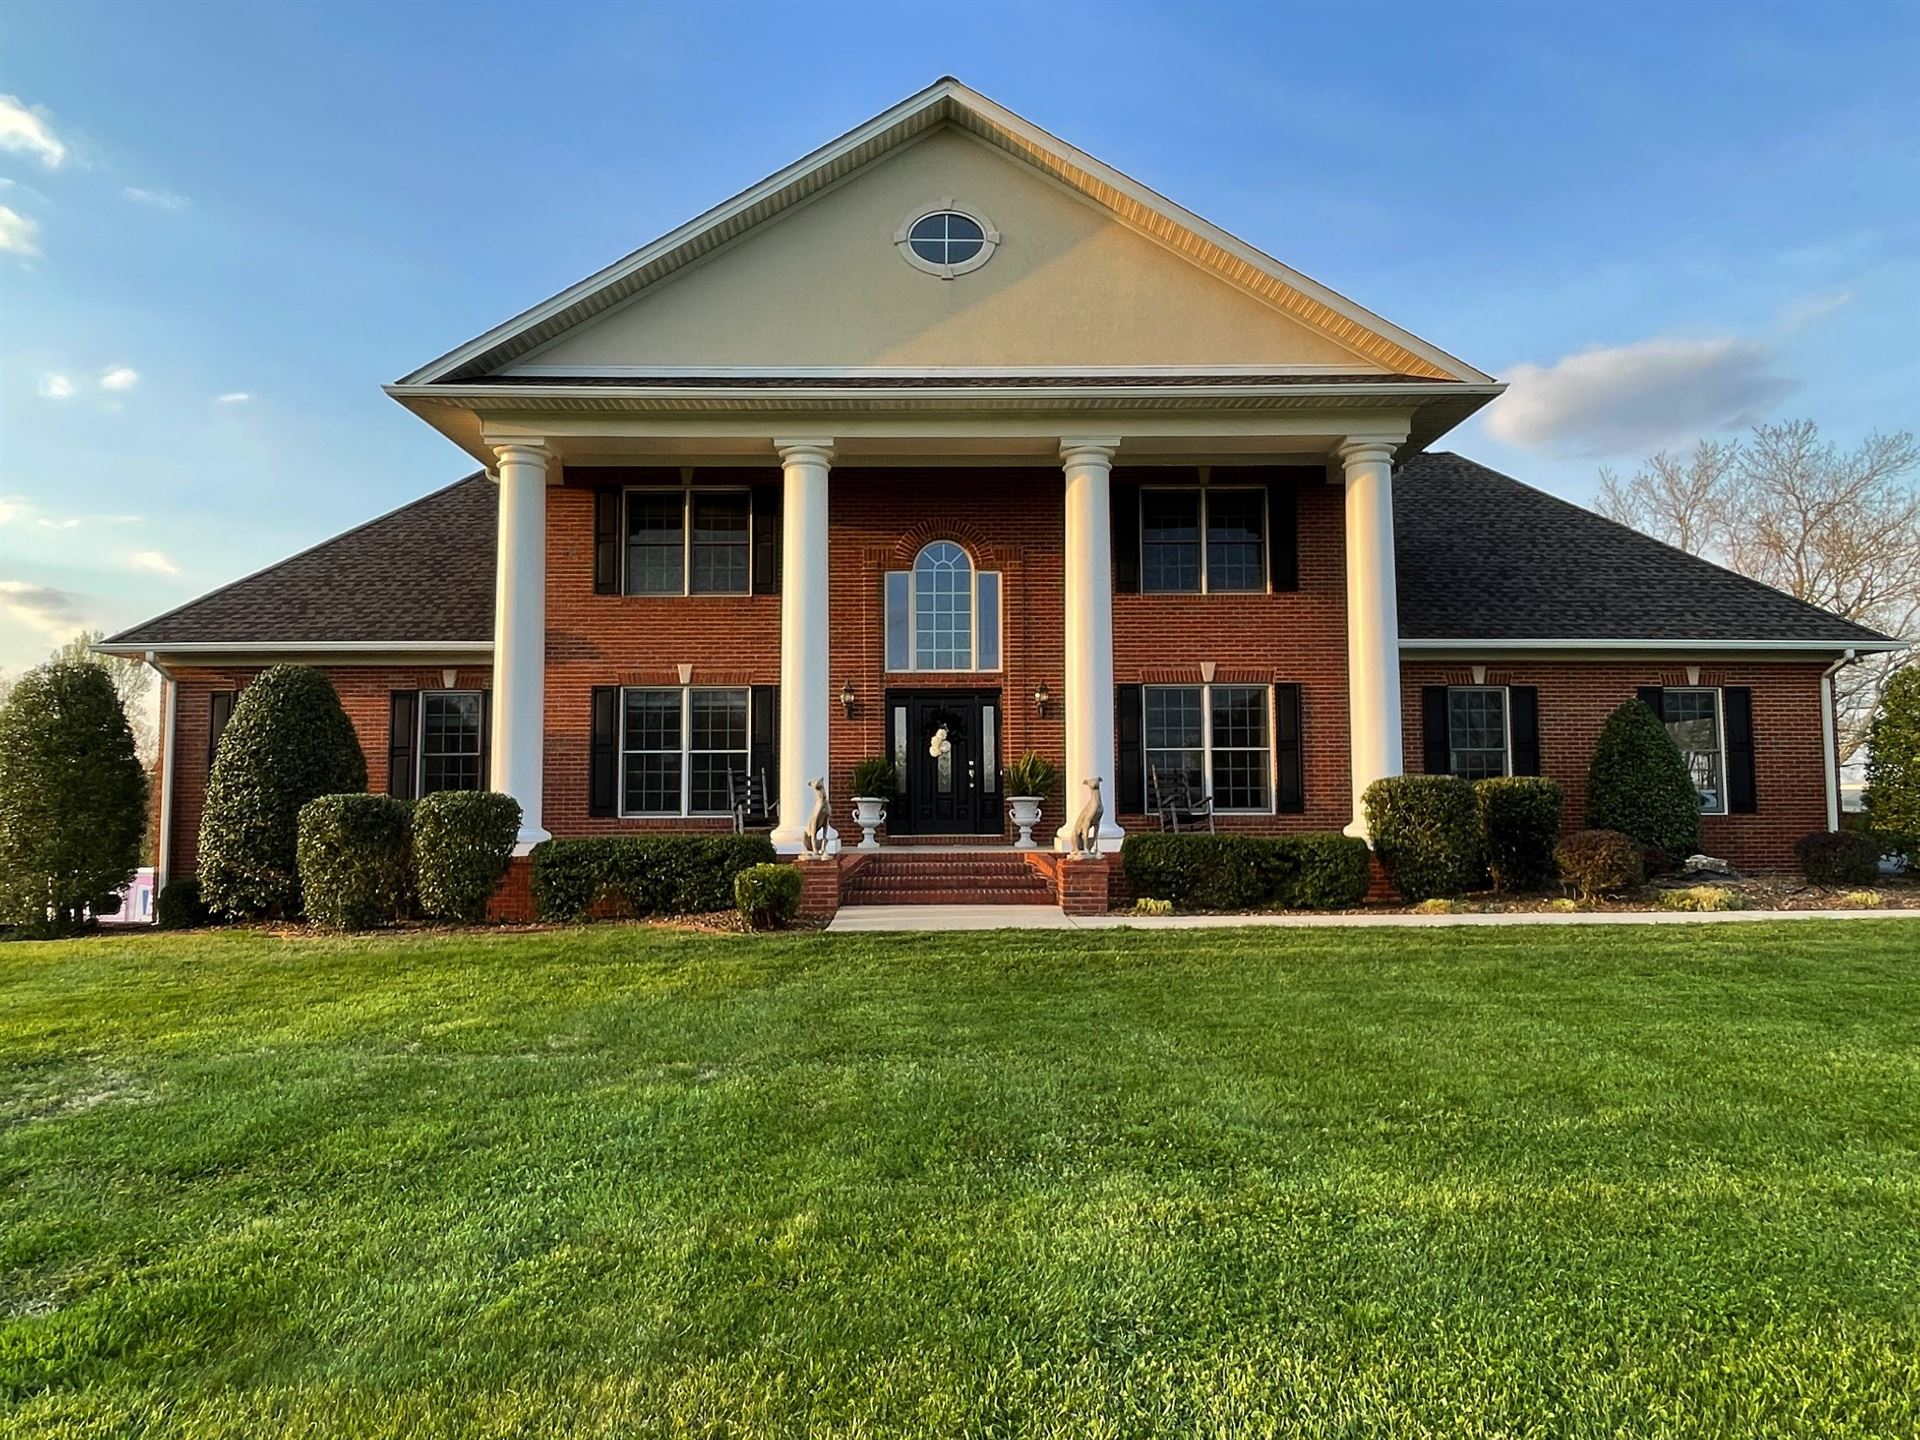 4715 Bob Gentry Rd, Cookeville, TN 38506 - MLS#: 2244940